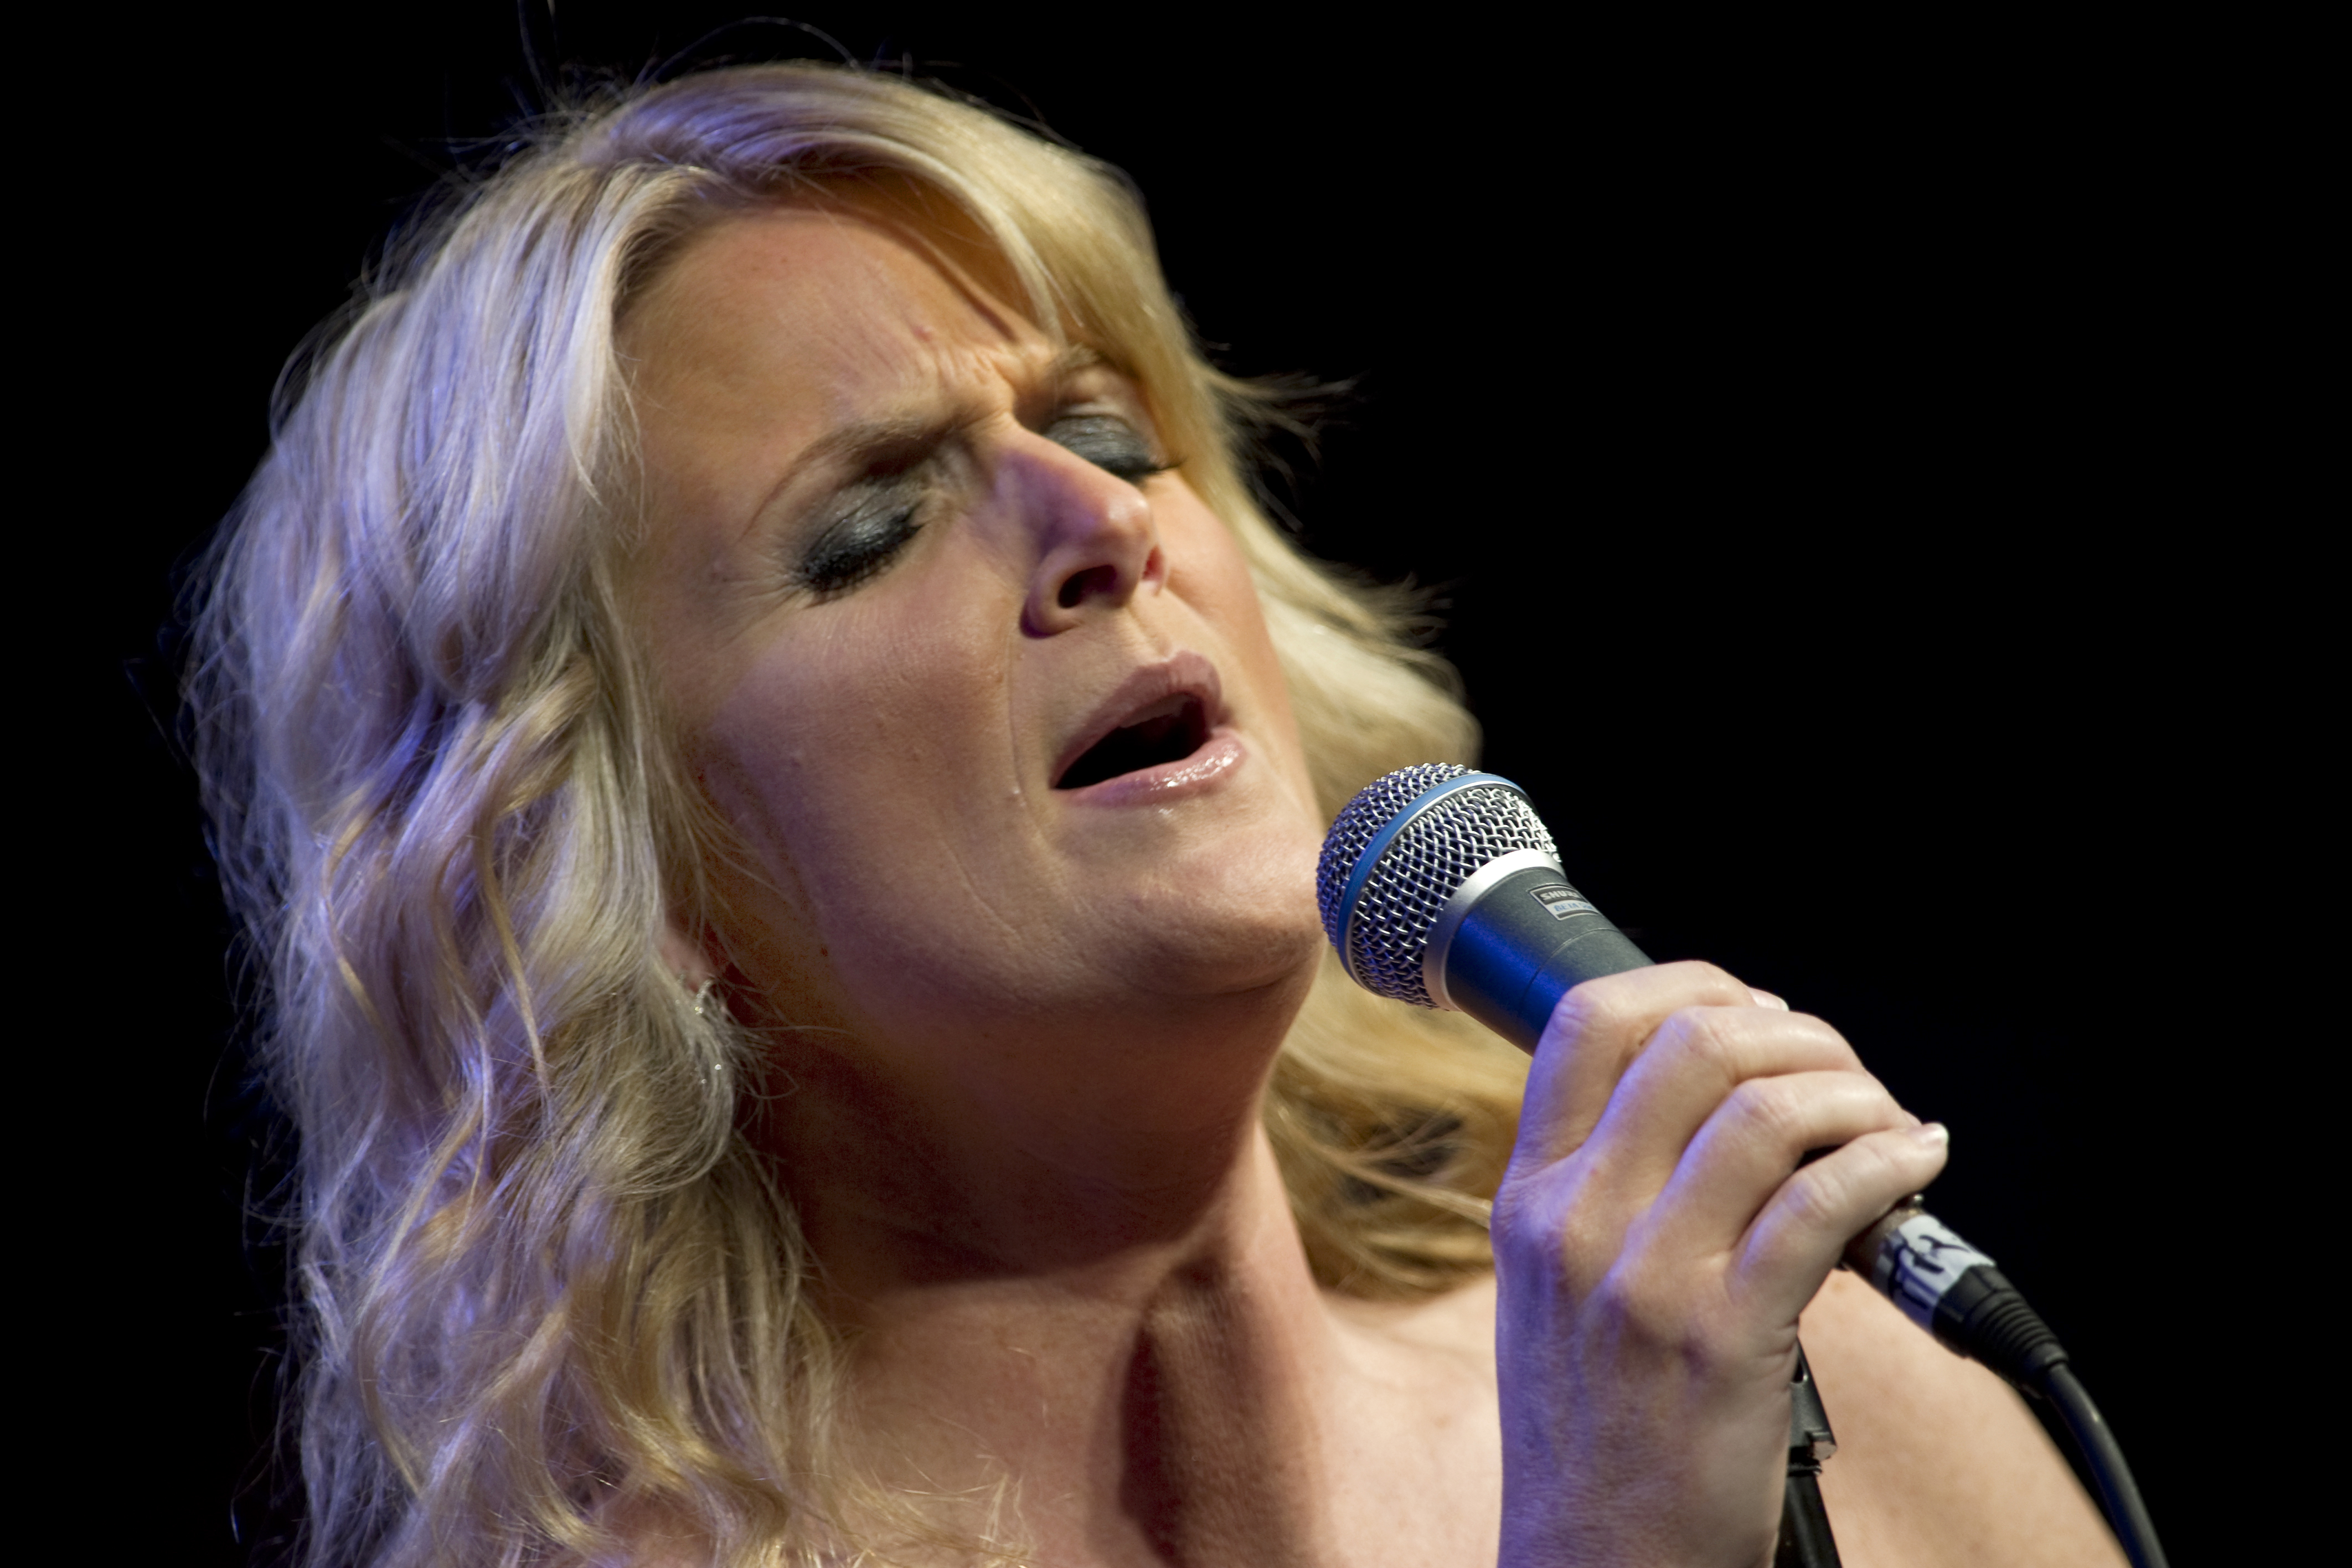 The 53-year old daughter of father Jack Yearwood and mother Gwen Yearwood Trisha Yearwood in 2018 photo. Trisha Yearwood earned a  million dollar salary - leaving the net worth at 28 million in 2018